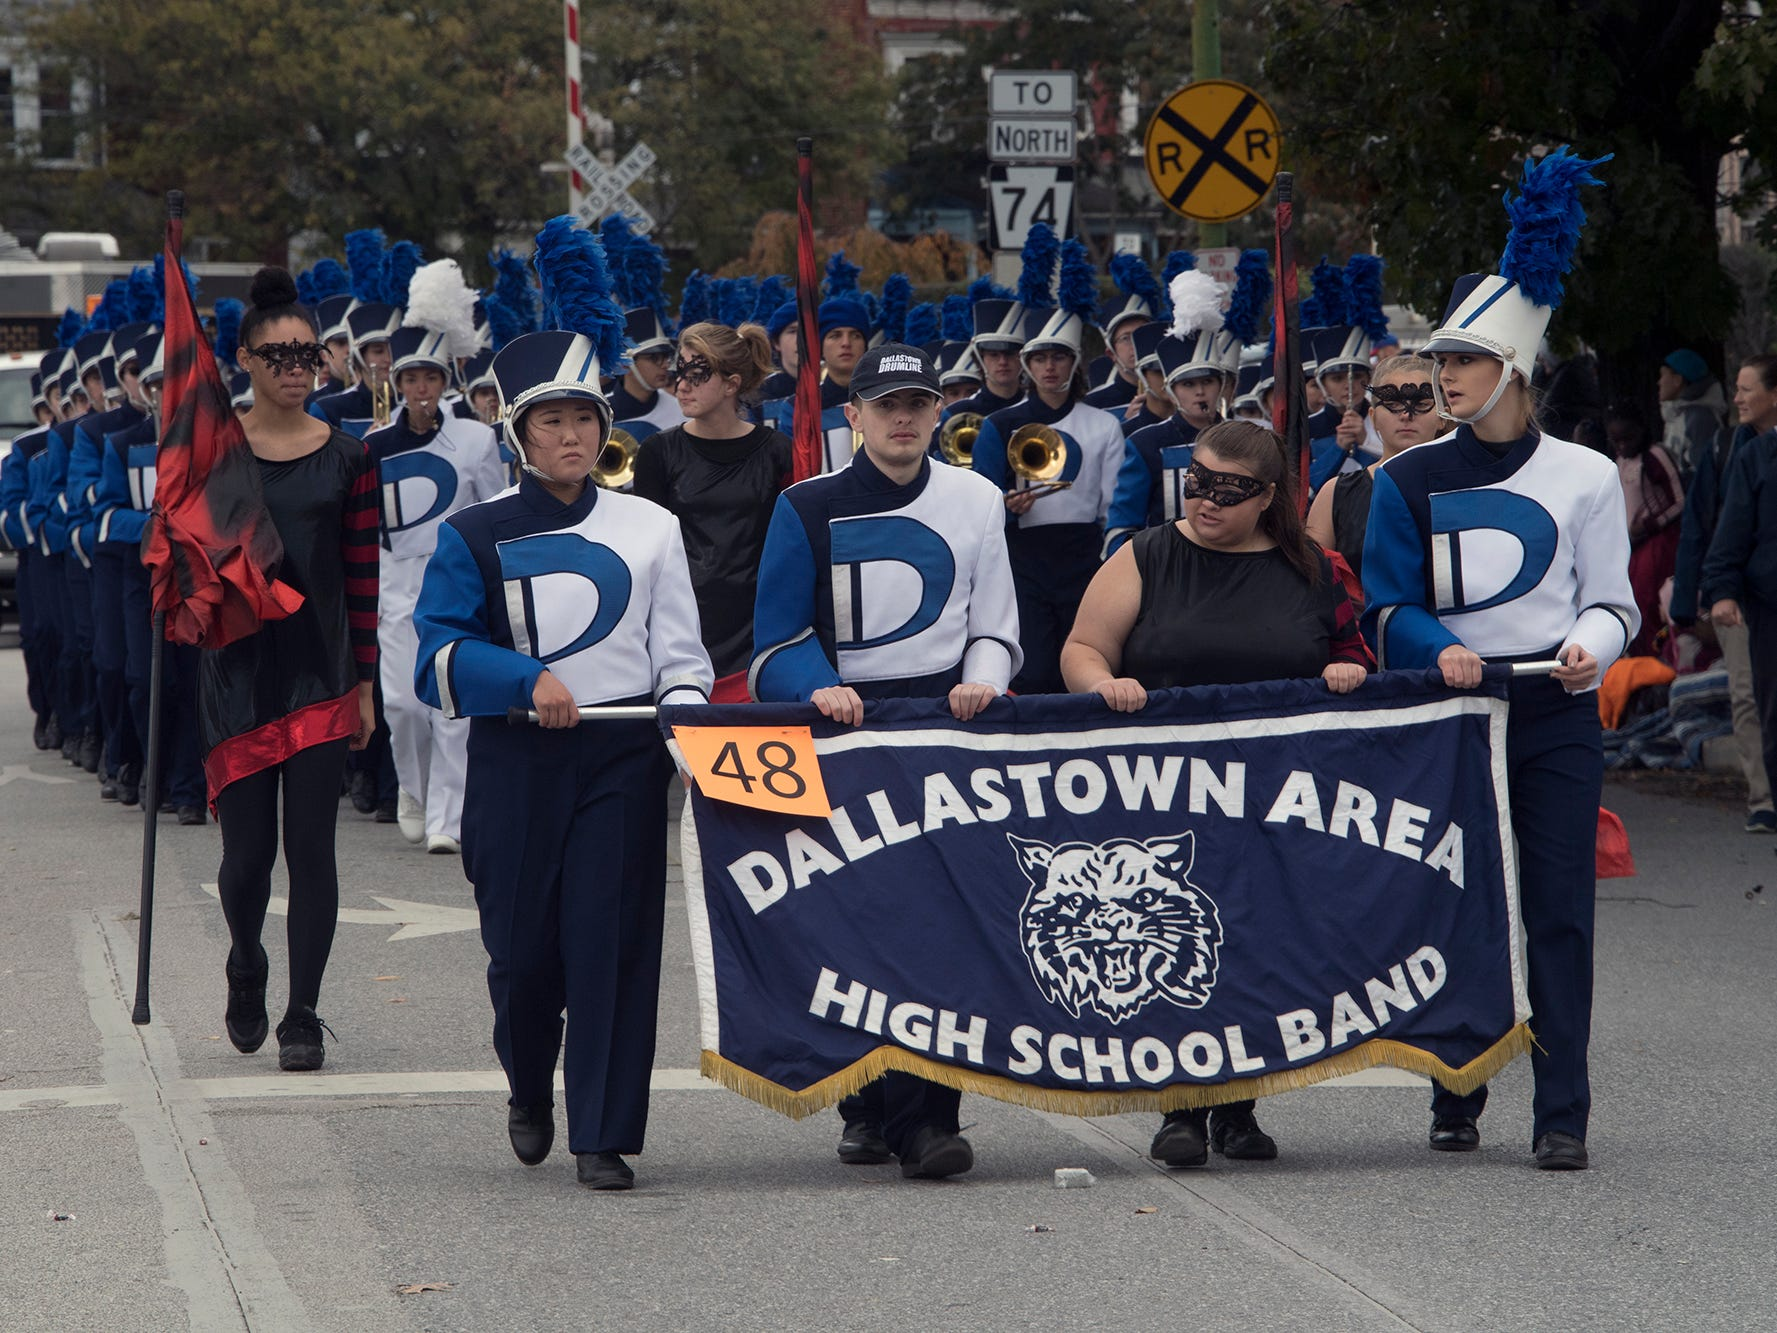 Dallastown Area High School High School Band marches during the 69th Annual York Halloween Parade.